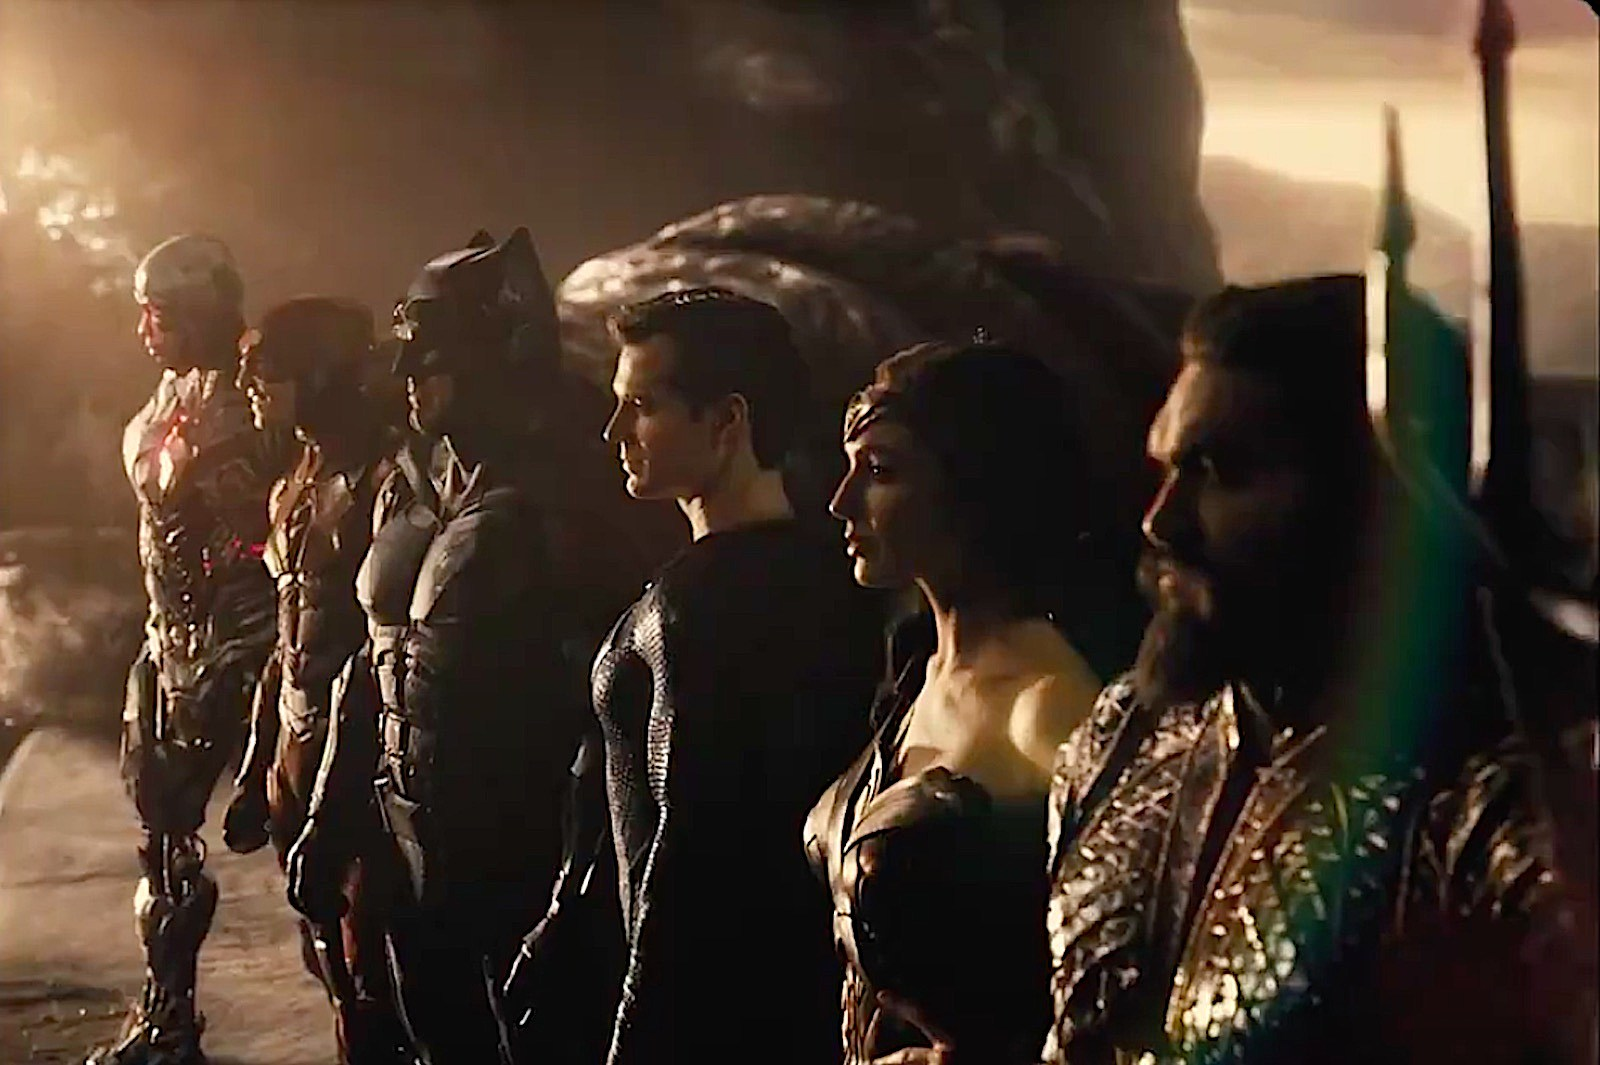 Hallelujah, Here's The First 'Justice League' Snyder Cut Trailer